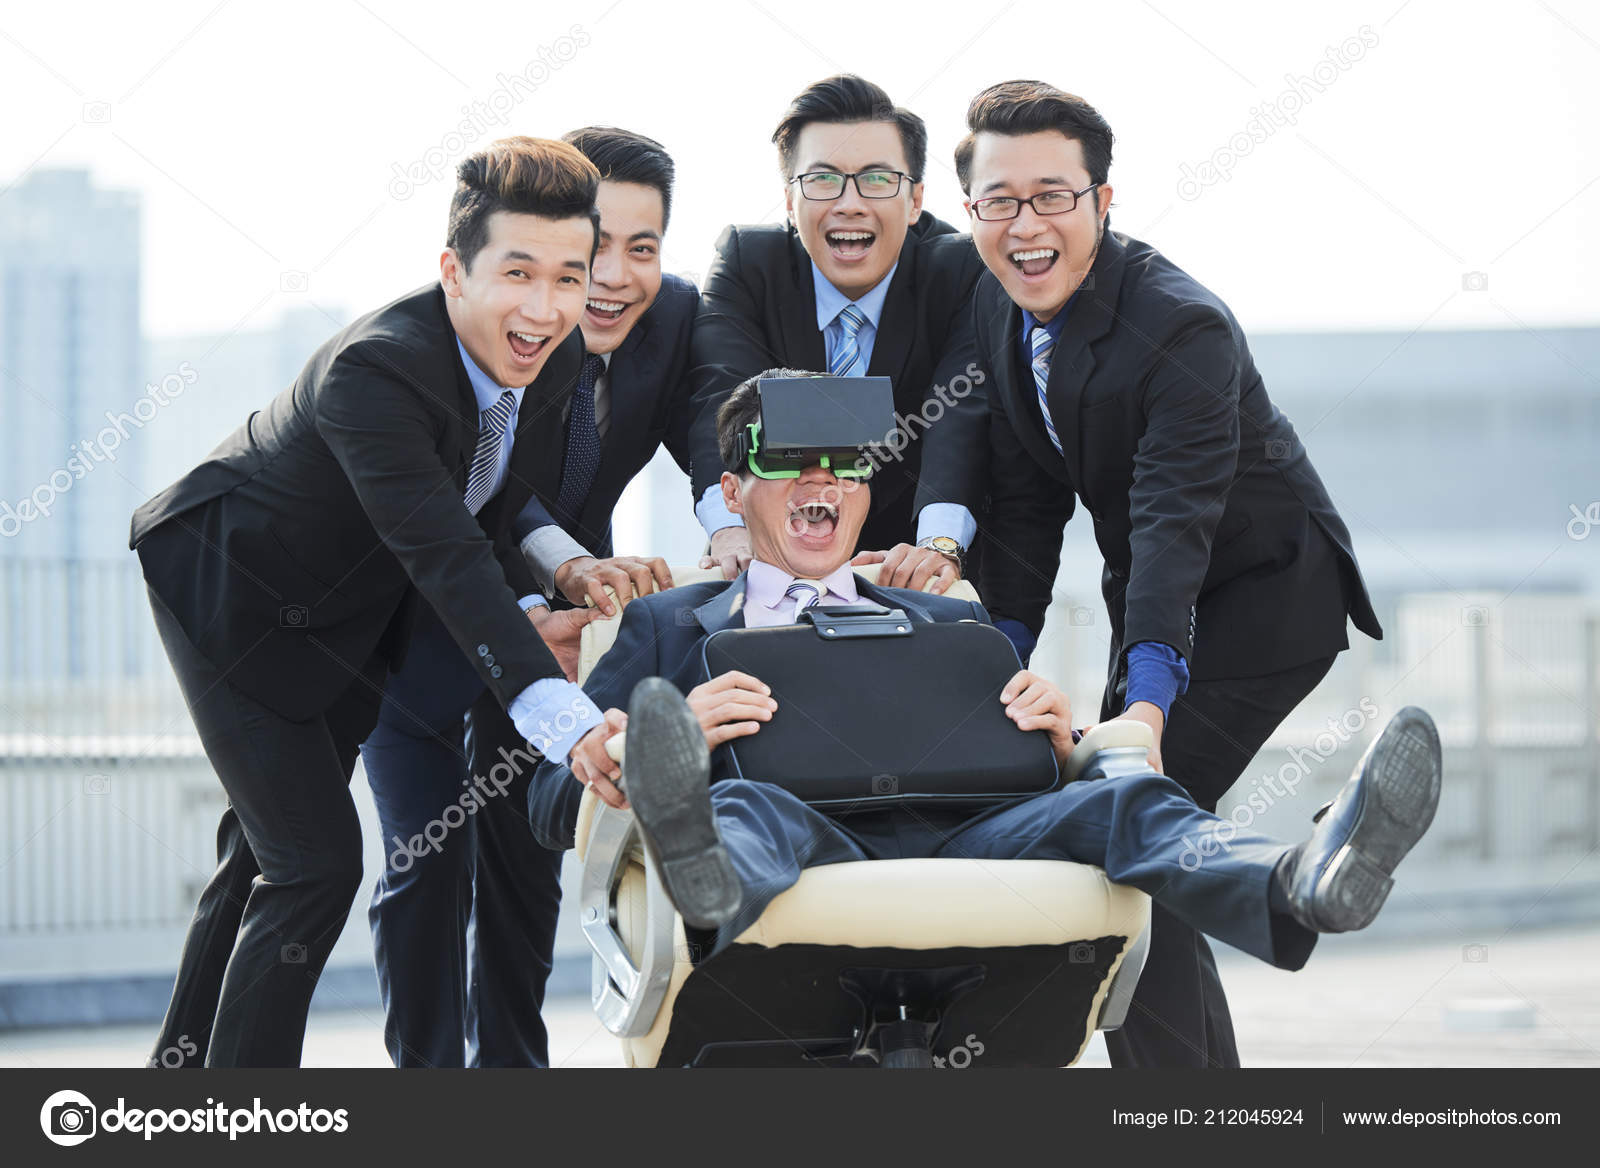 swivel chair vr king louis xvi dining chairs joyful asian businessmen pushing colleague wearing with headset photo by dragonimages